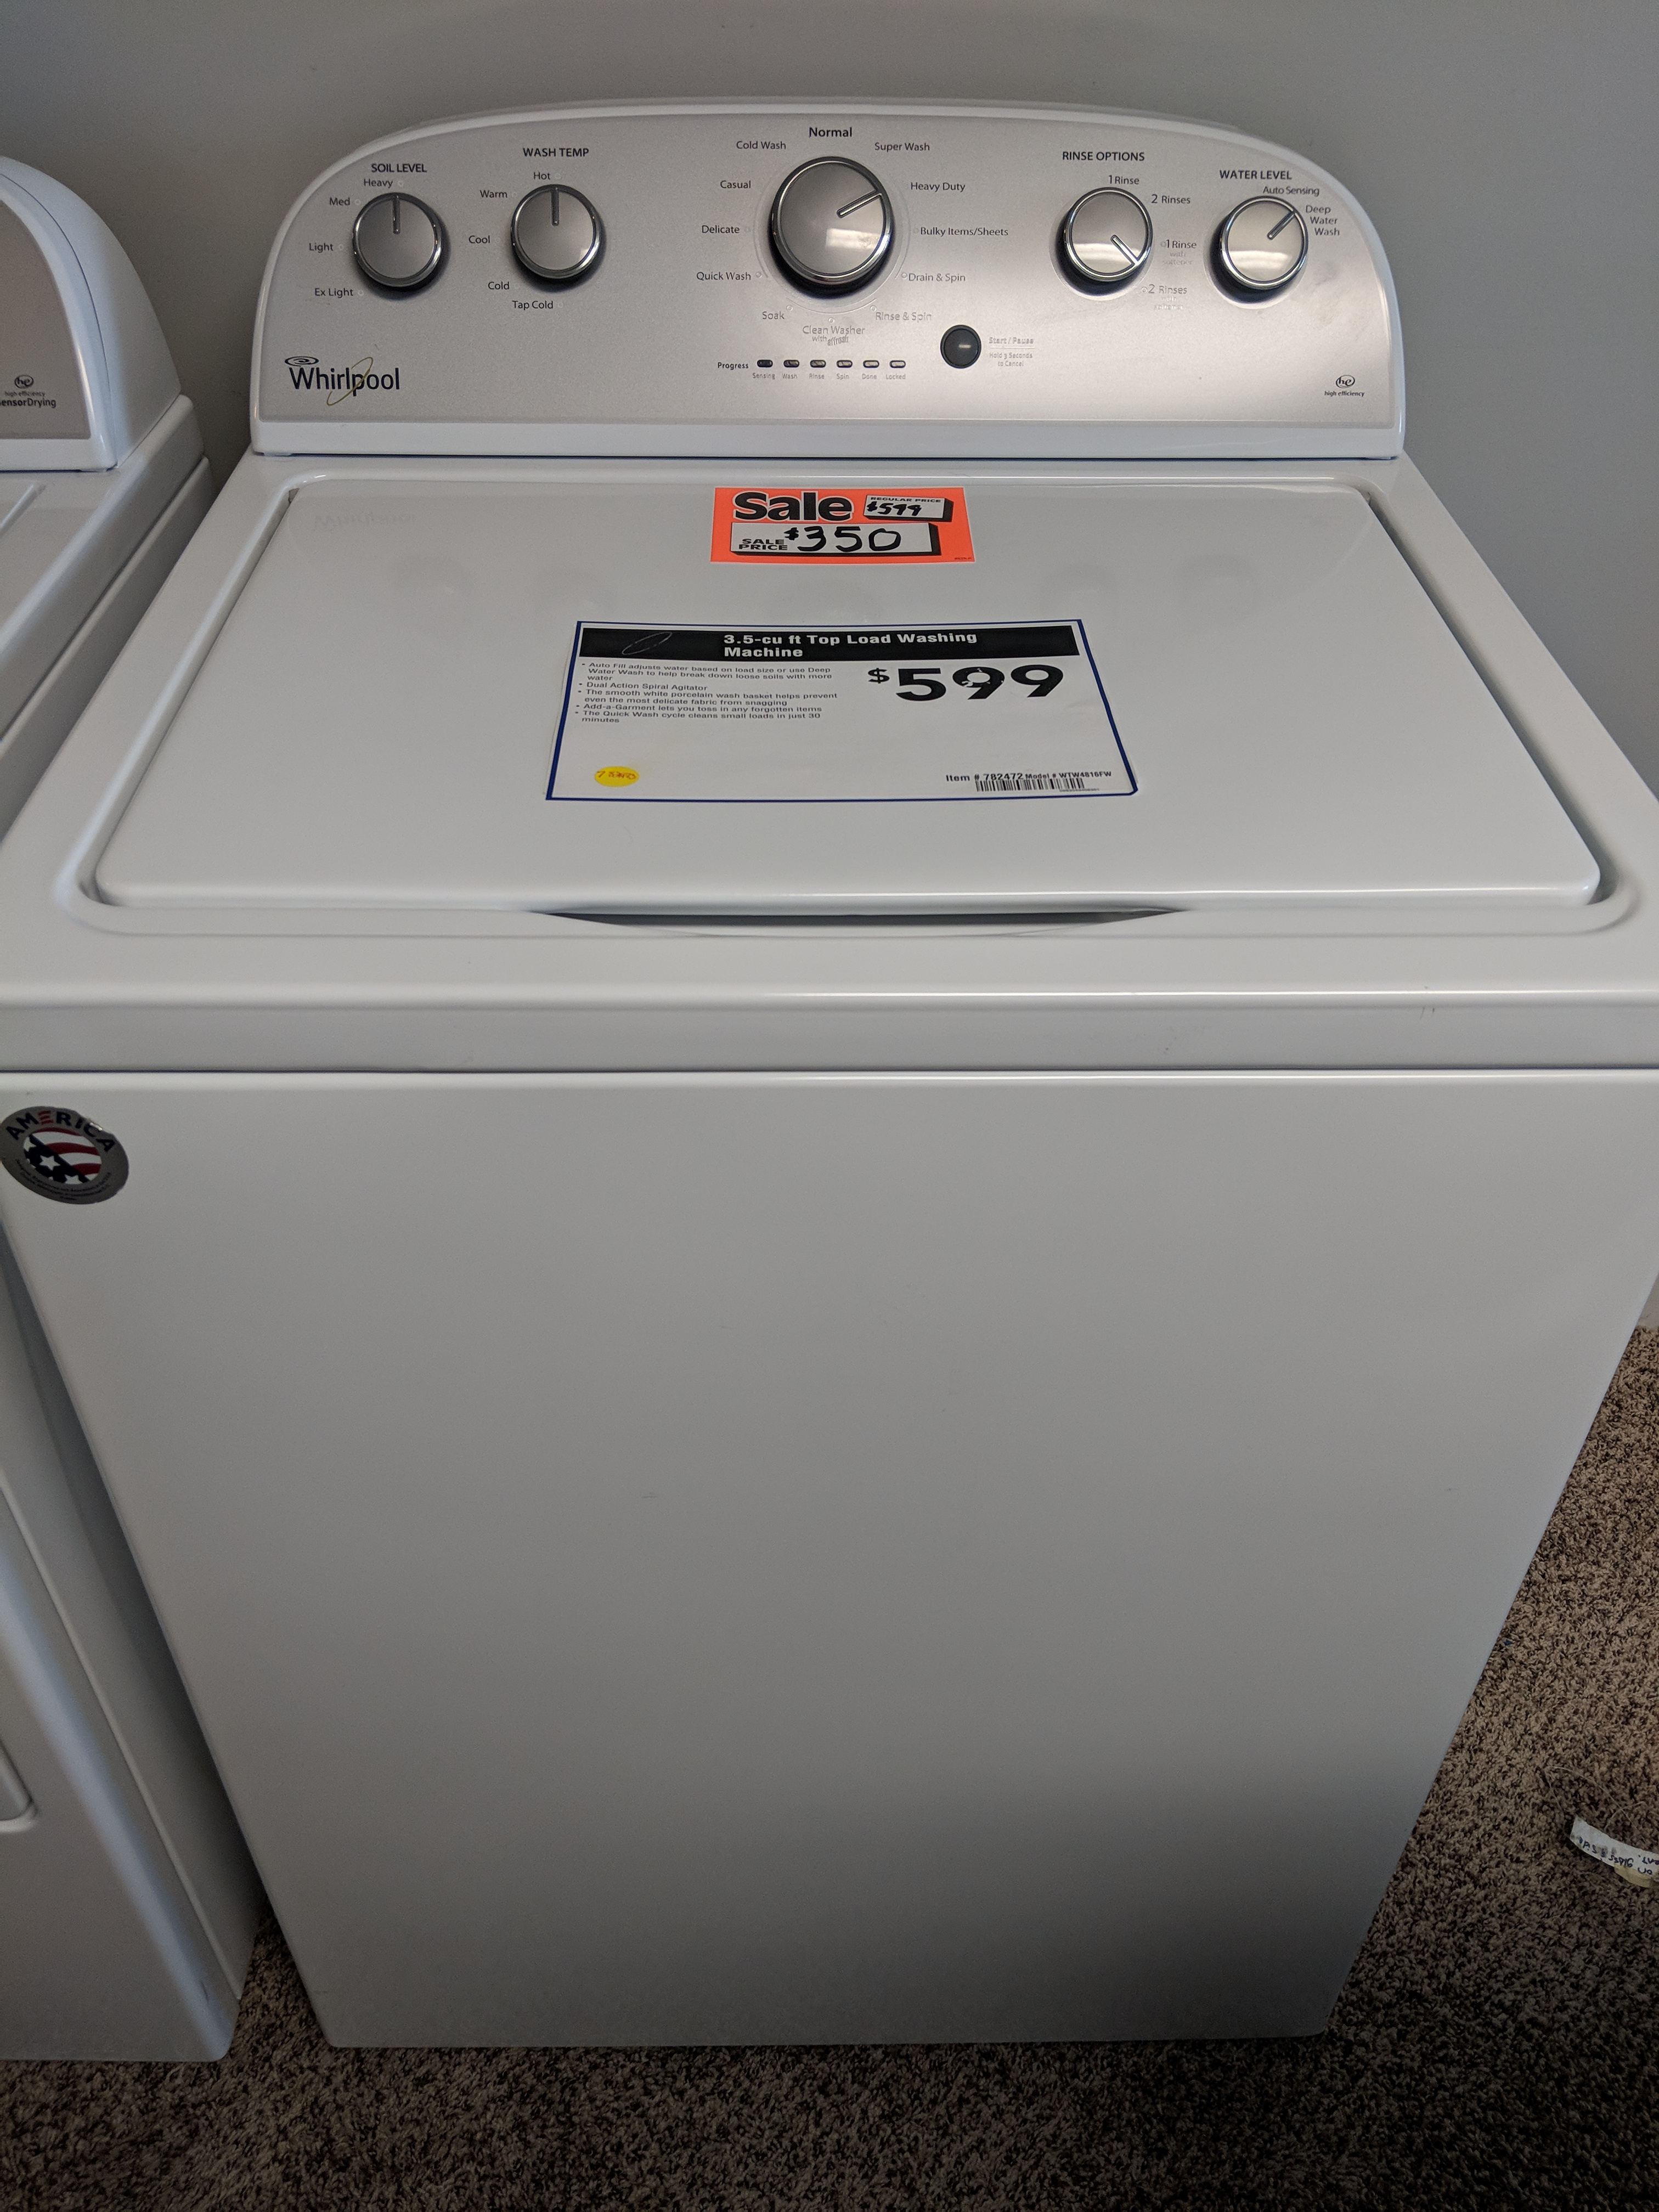 Whirlpool Washer With Agitator >> Sold Whirlpool 3 5 Cu Ft Top Load Washer With Agitator White